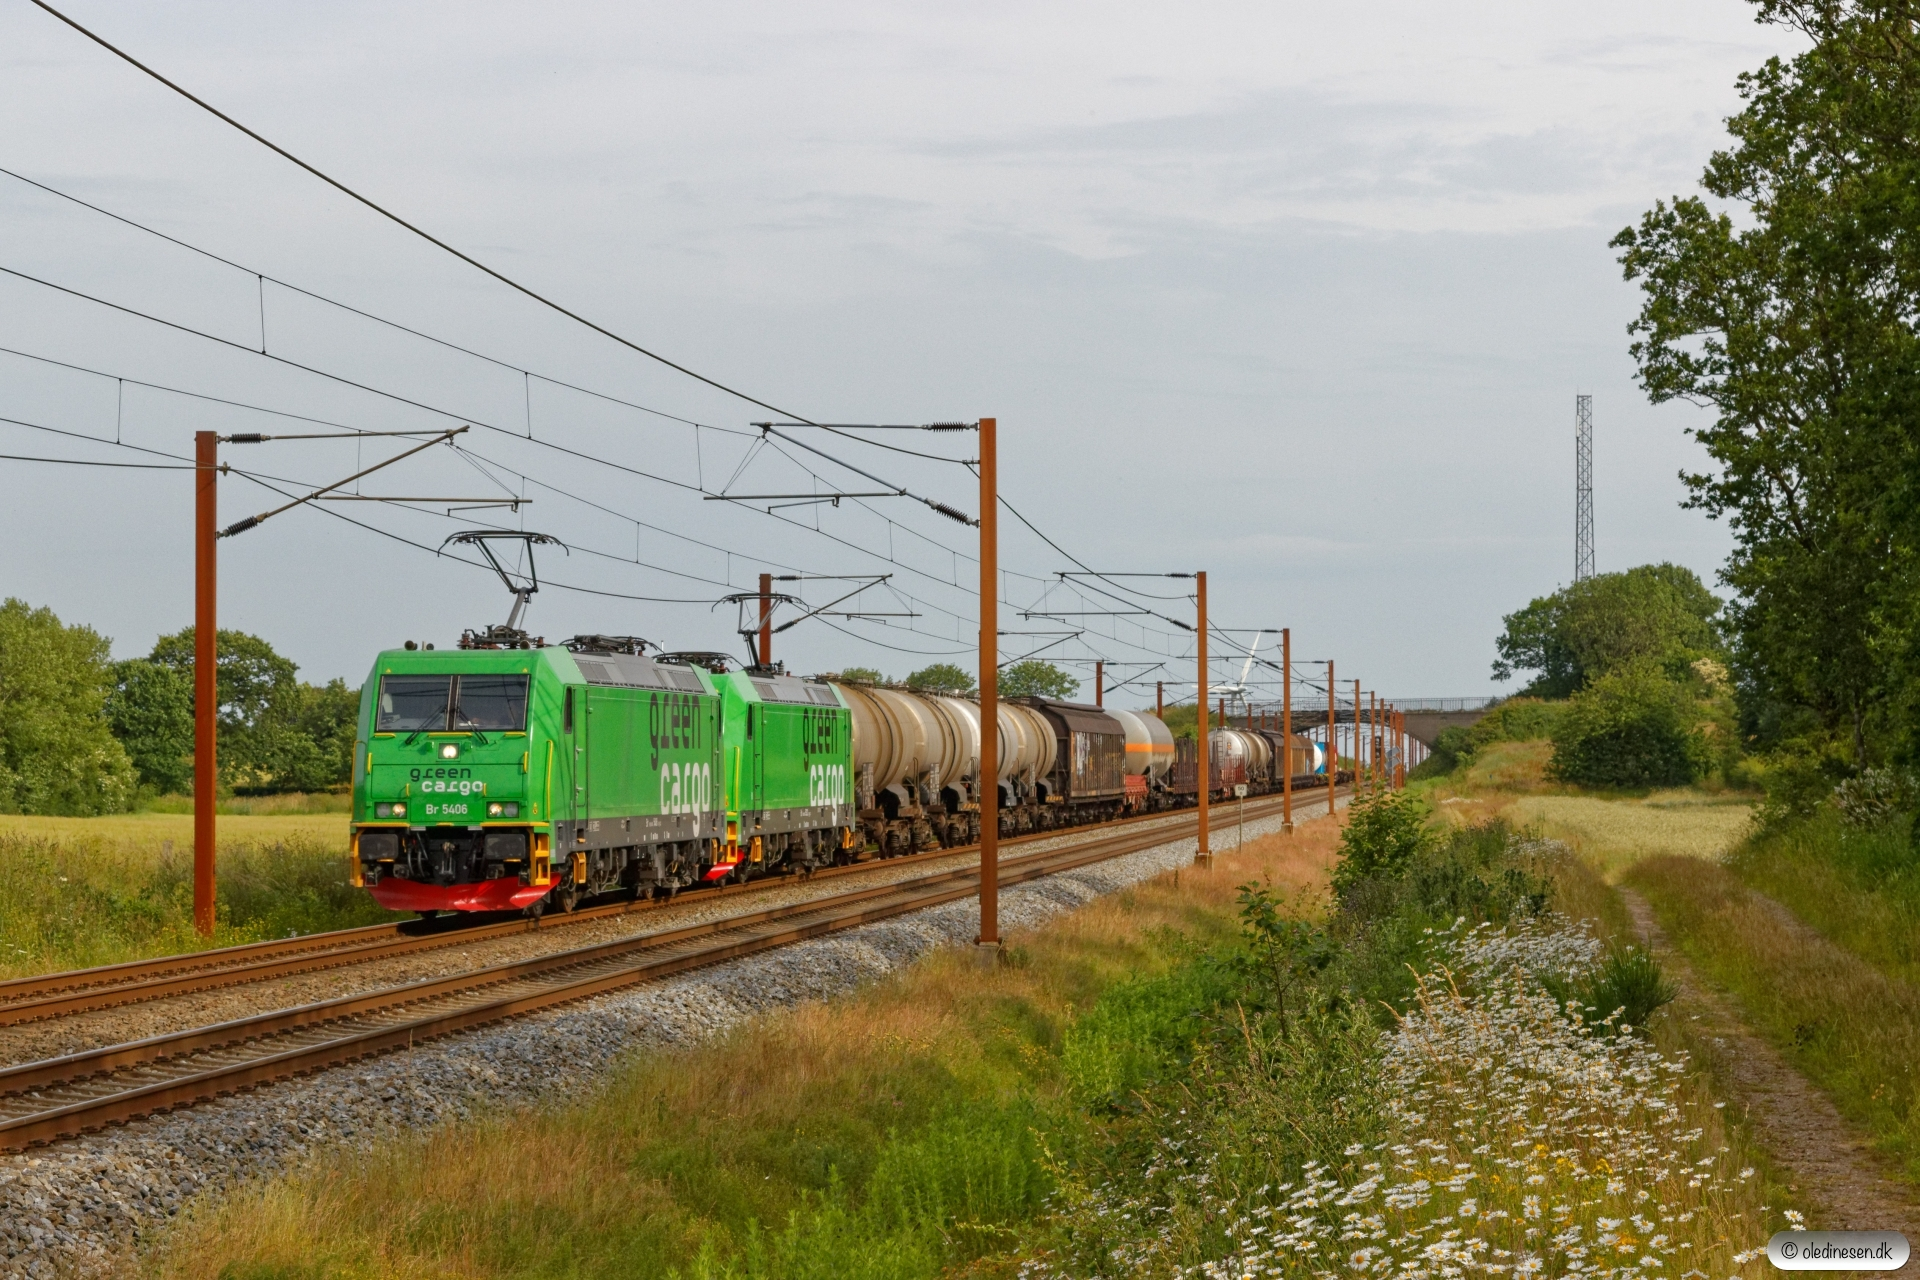 GC Br 5406+Br 5332 med NX 46261 Mgb-Pa. Km 50,0 Fa (Farris-Sommersted) 25.06.2019.